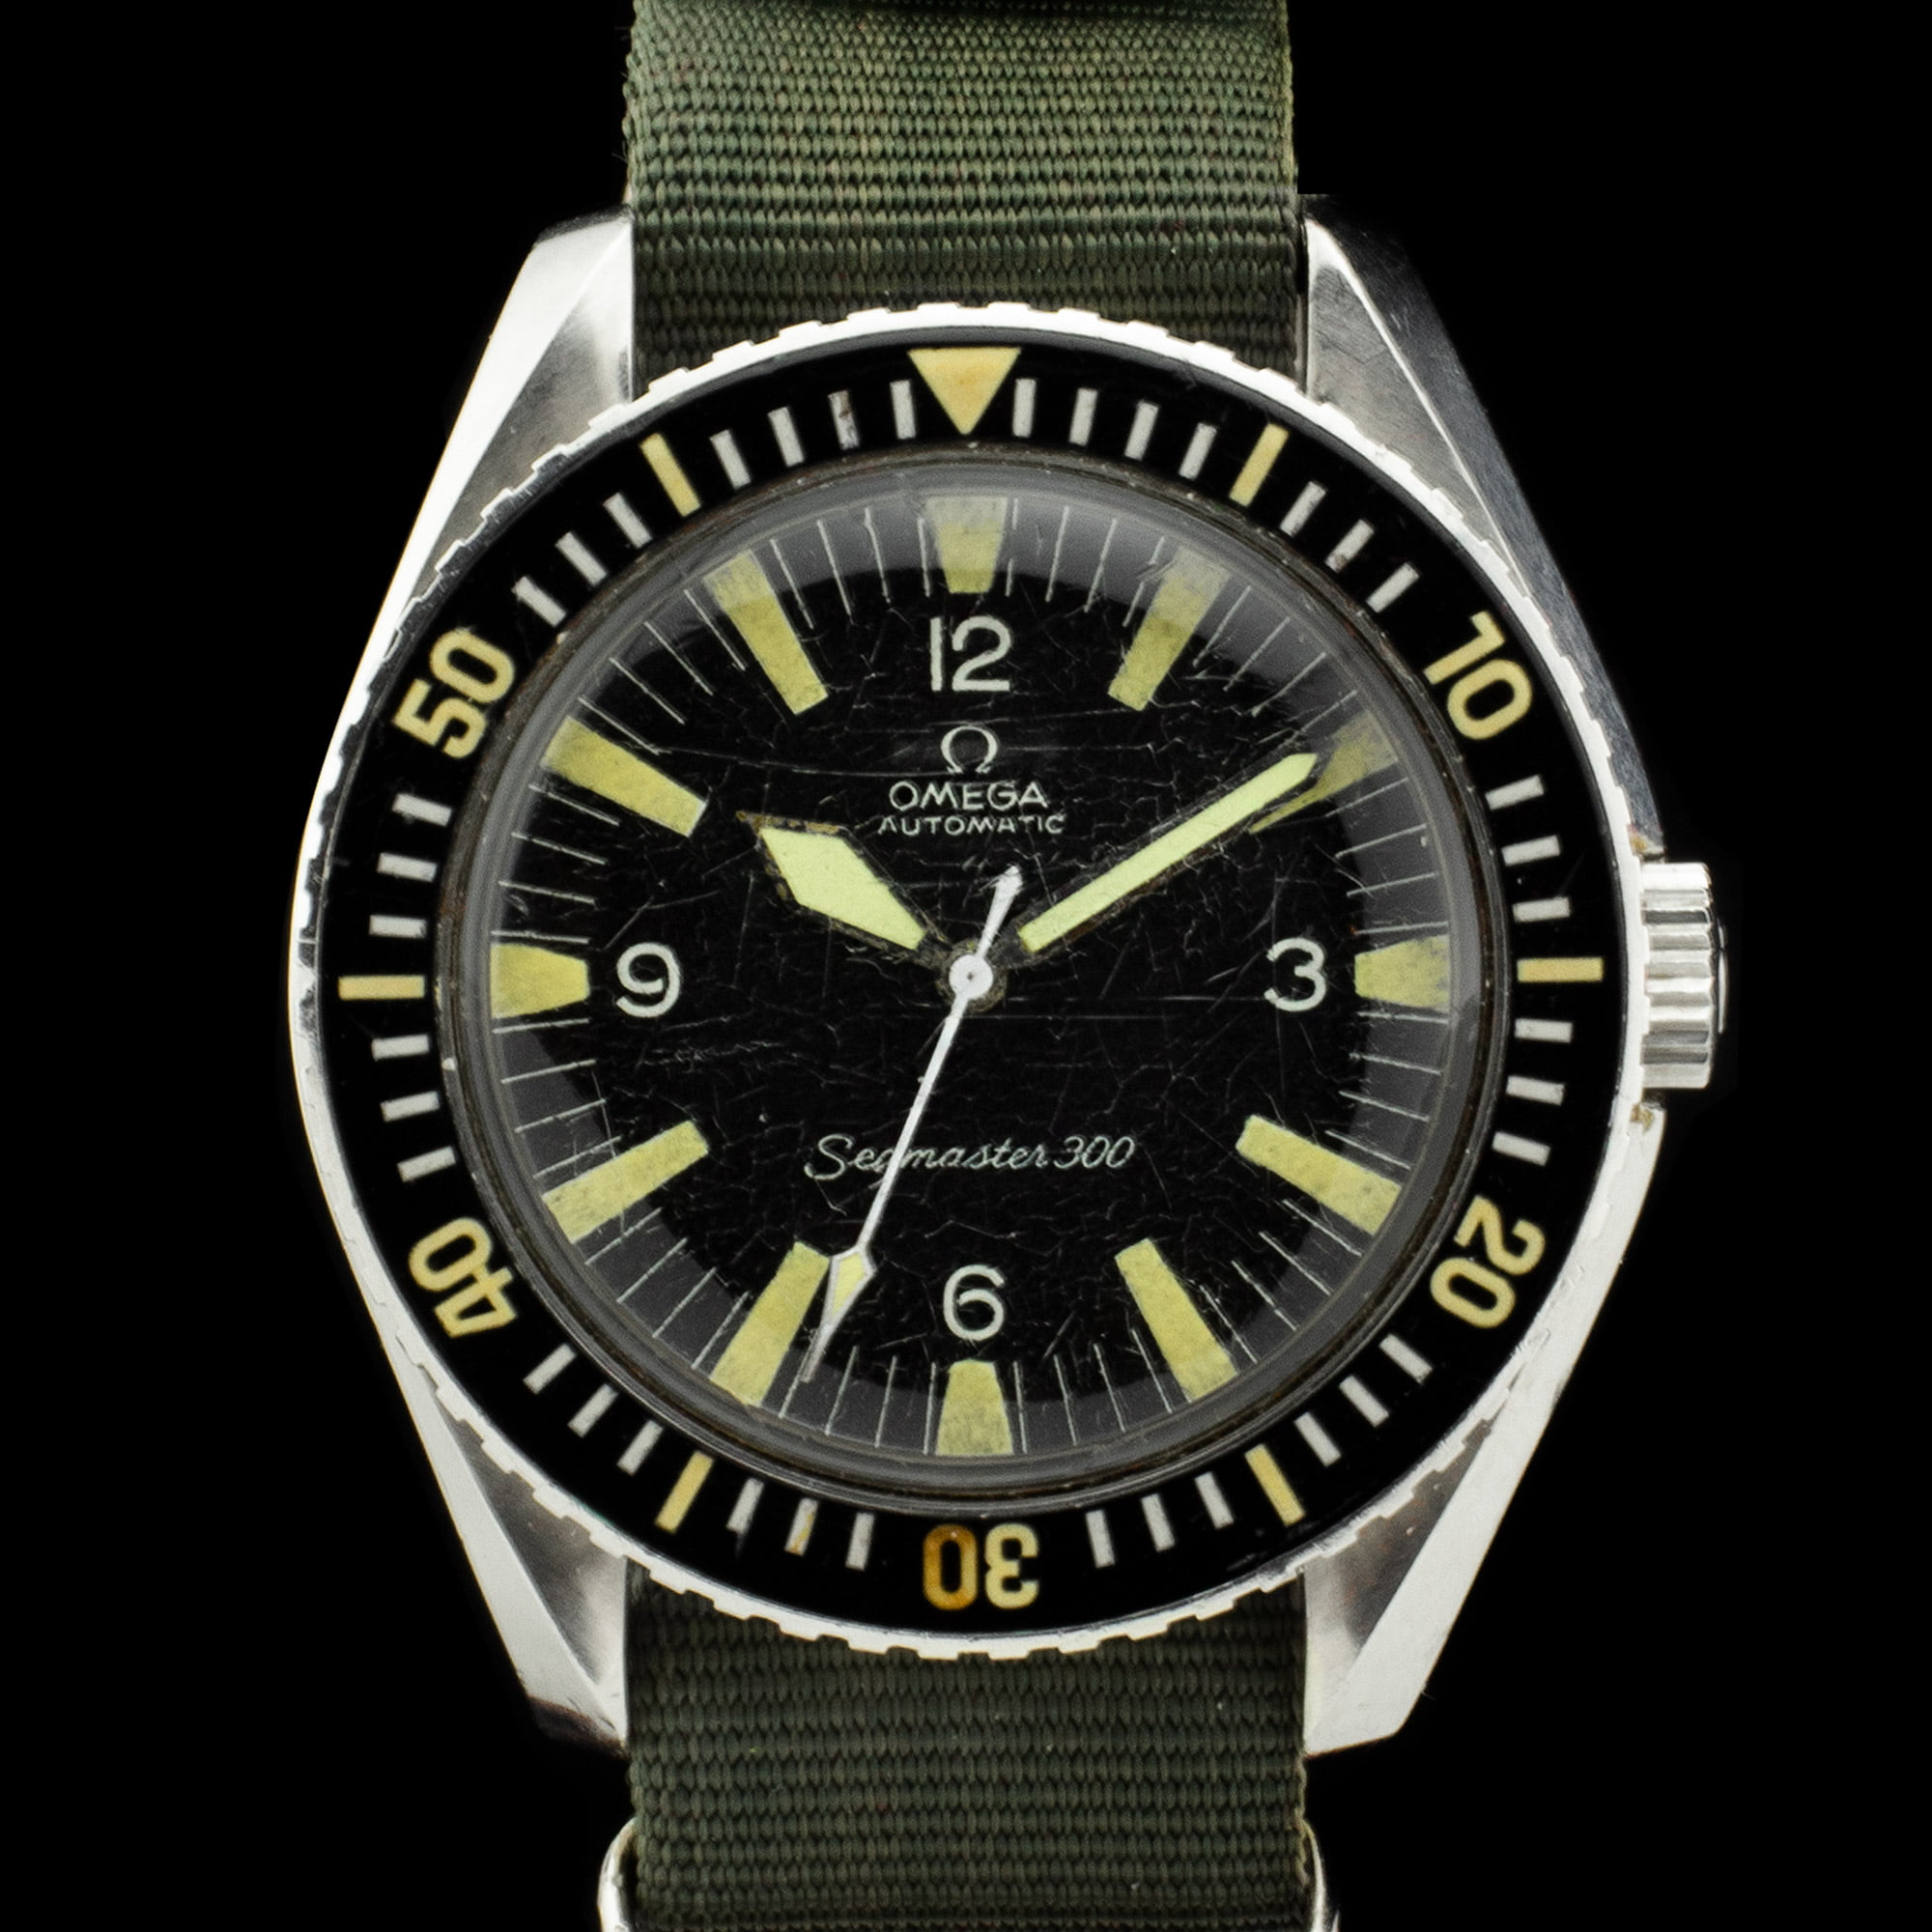 Omega Seamaster 300 Military 165024 Amsterdam Vintage Watches